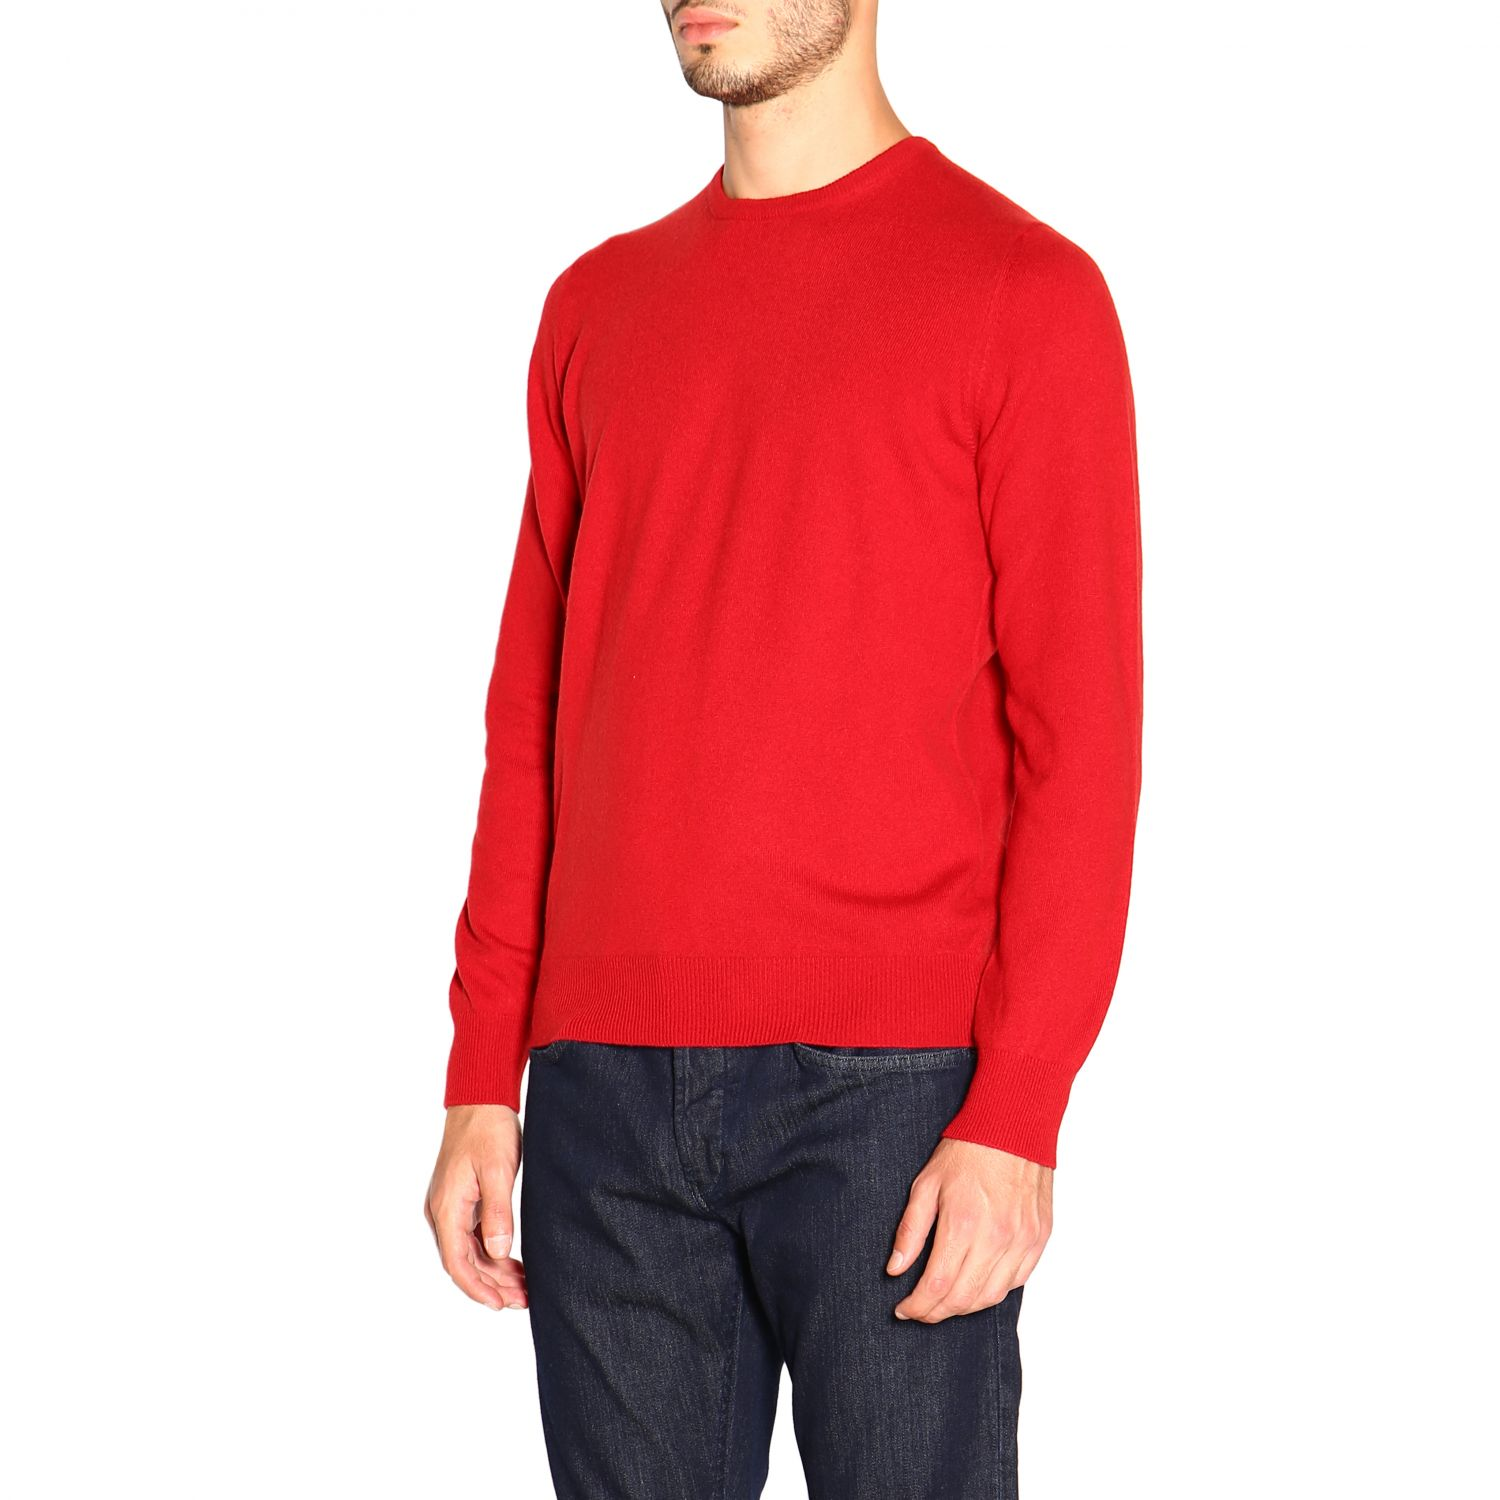 Sweater Barba Napoli: Sweater men Barba Napoli red 4